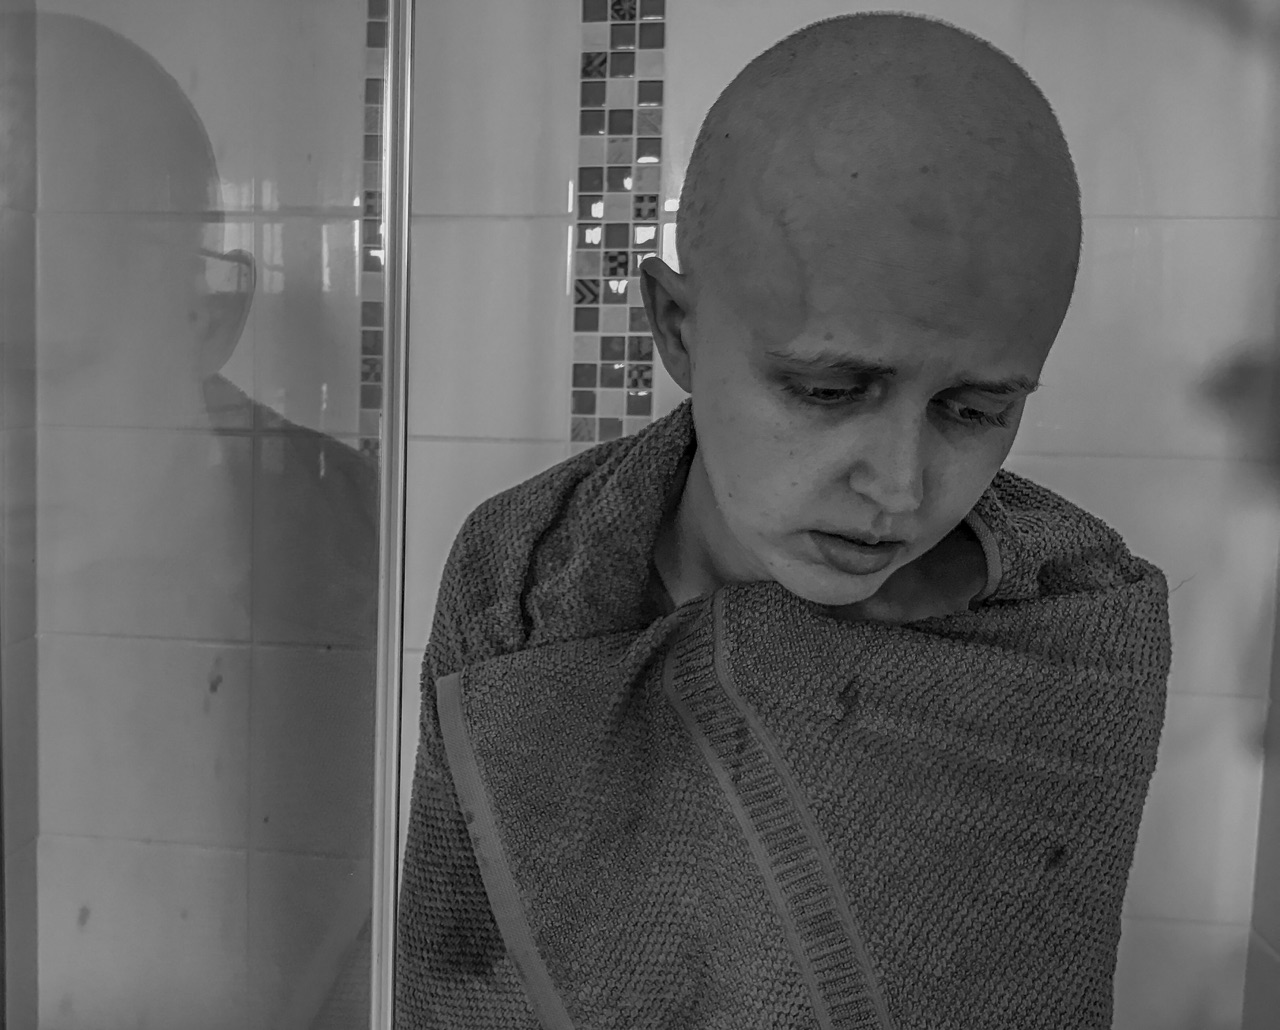 The raw vulnerability at this point in the journey was unhinging. Faye was holding on but because of her size and frame, chemo had hit her hard.  A lot of people thought she was brave but she didn't feel it...